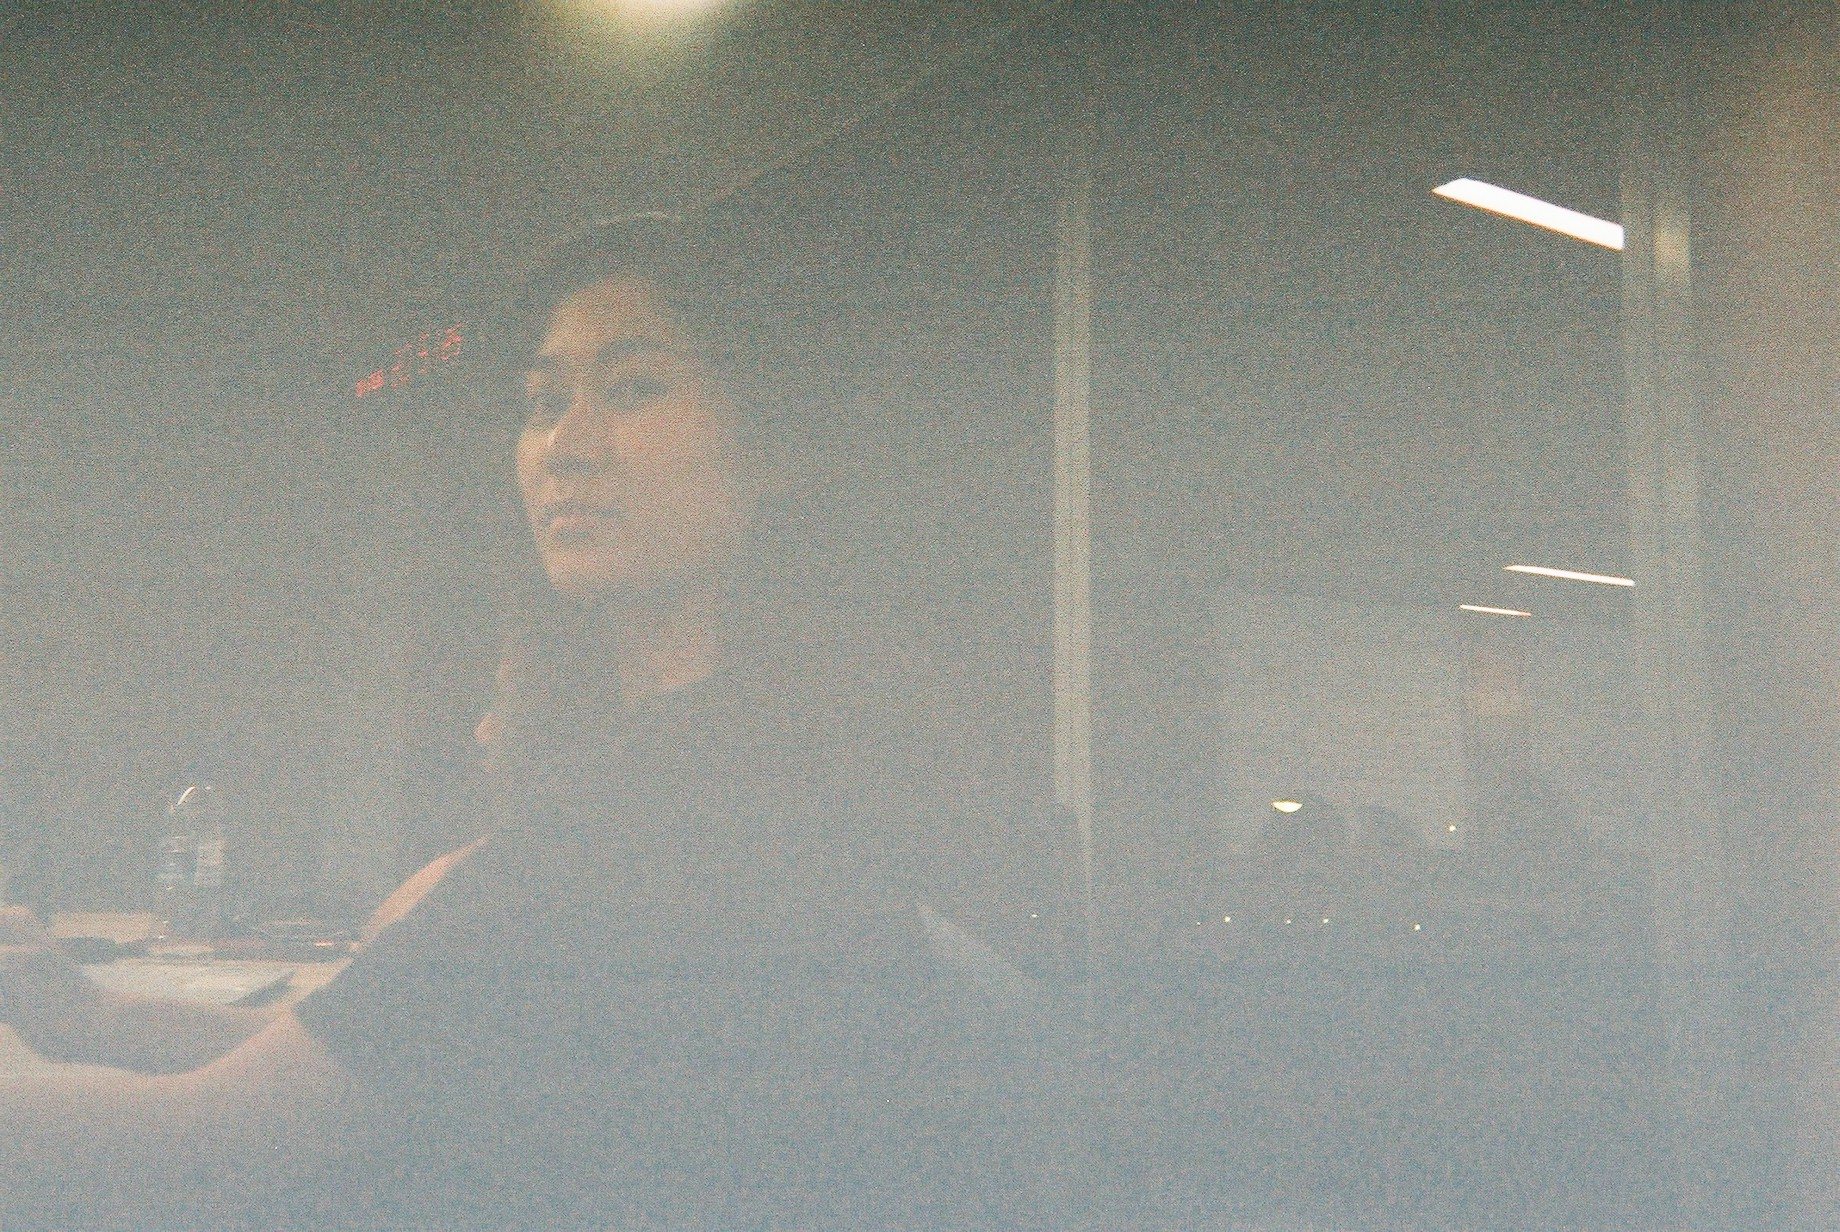 grainy film photo